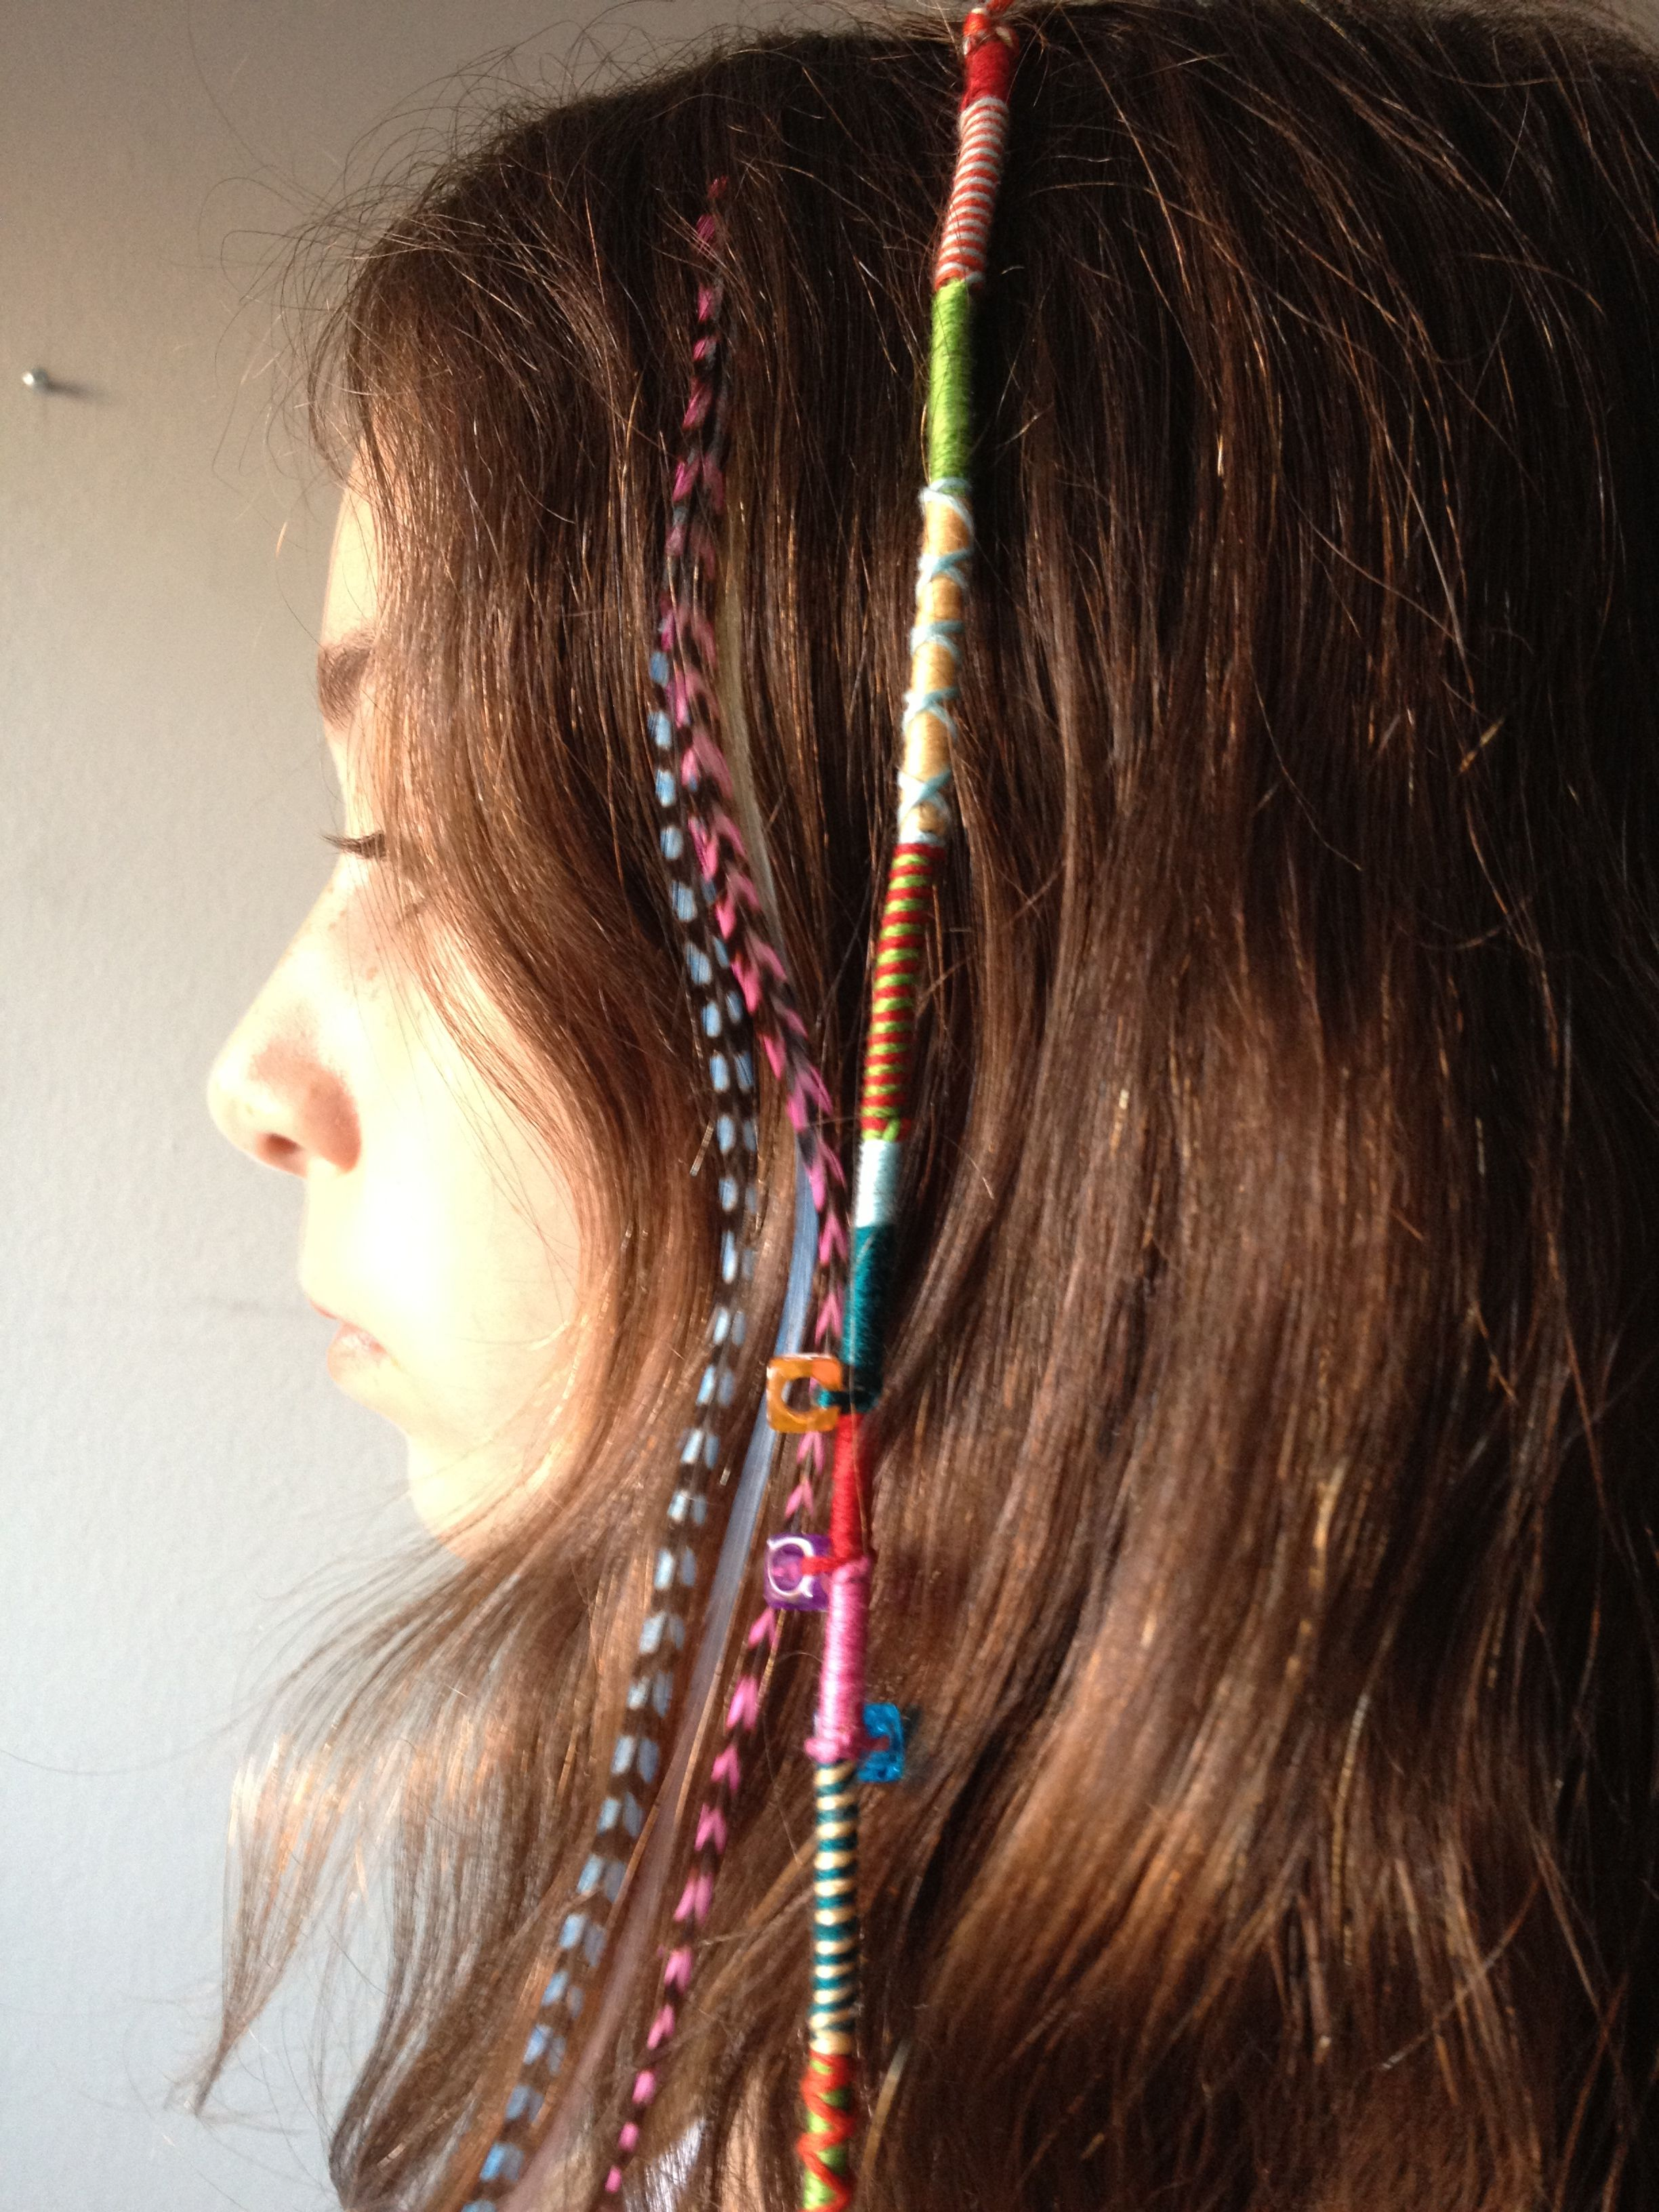 Hair Wrap With Friendship Bracelet String Next To Hair Feathers